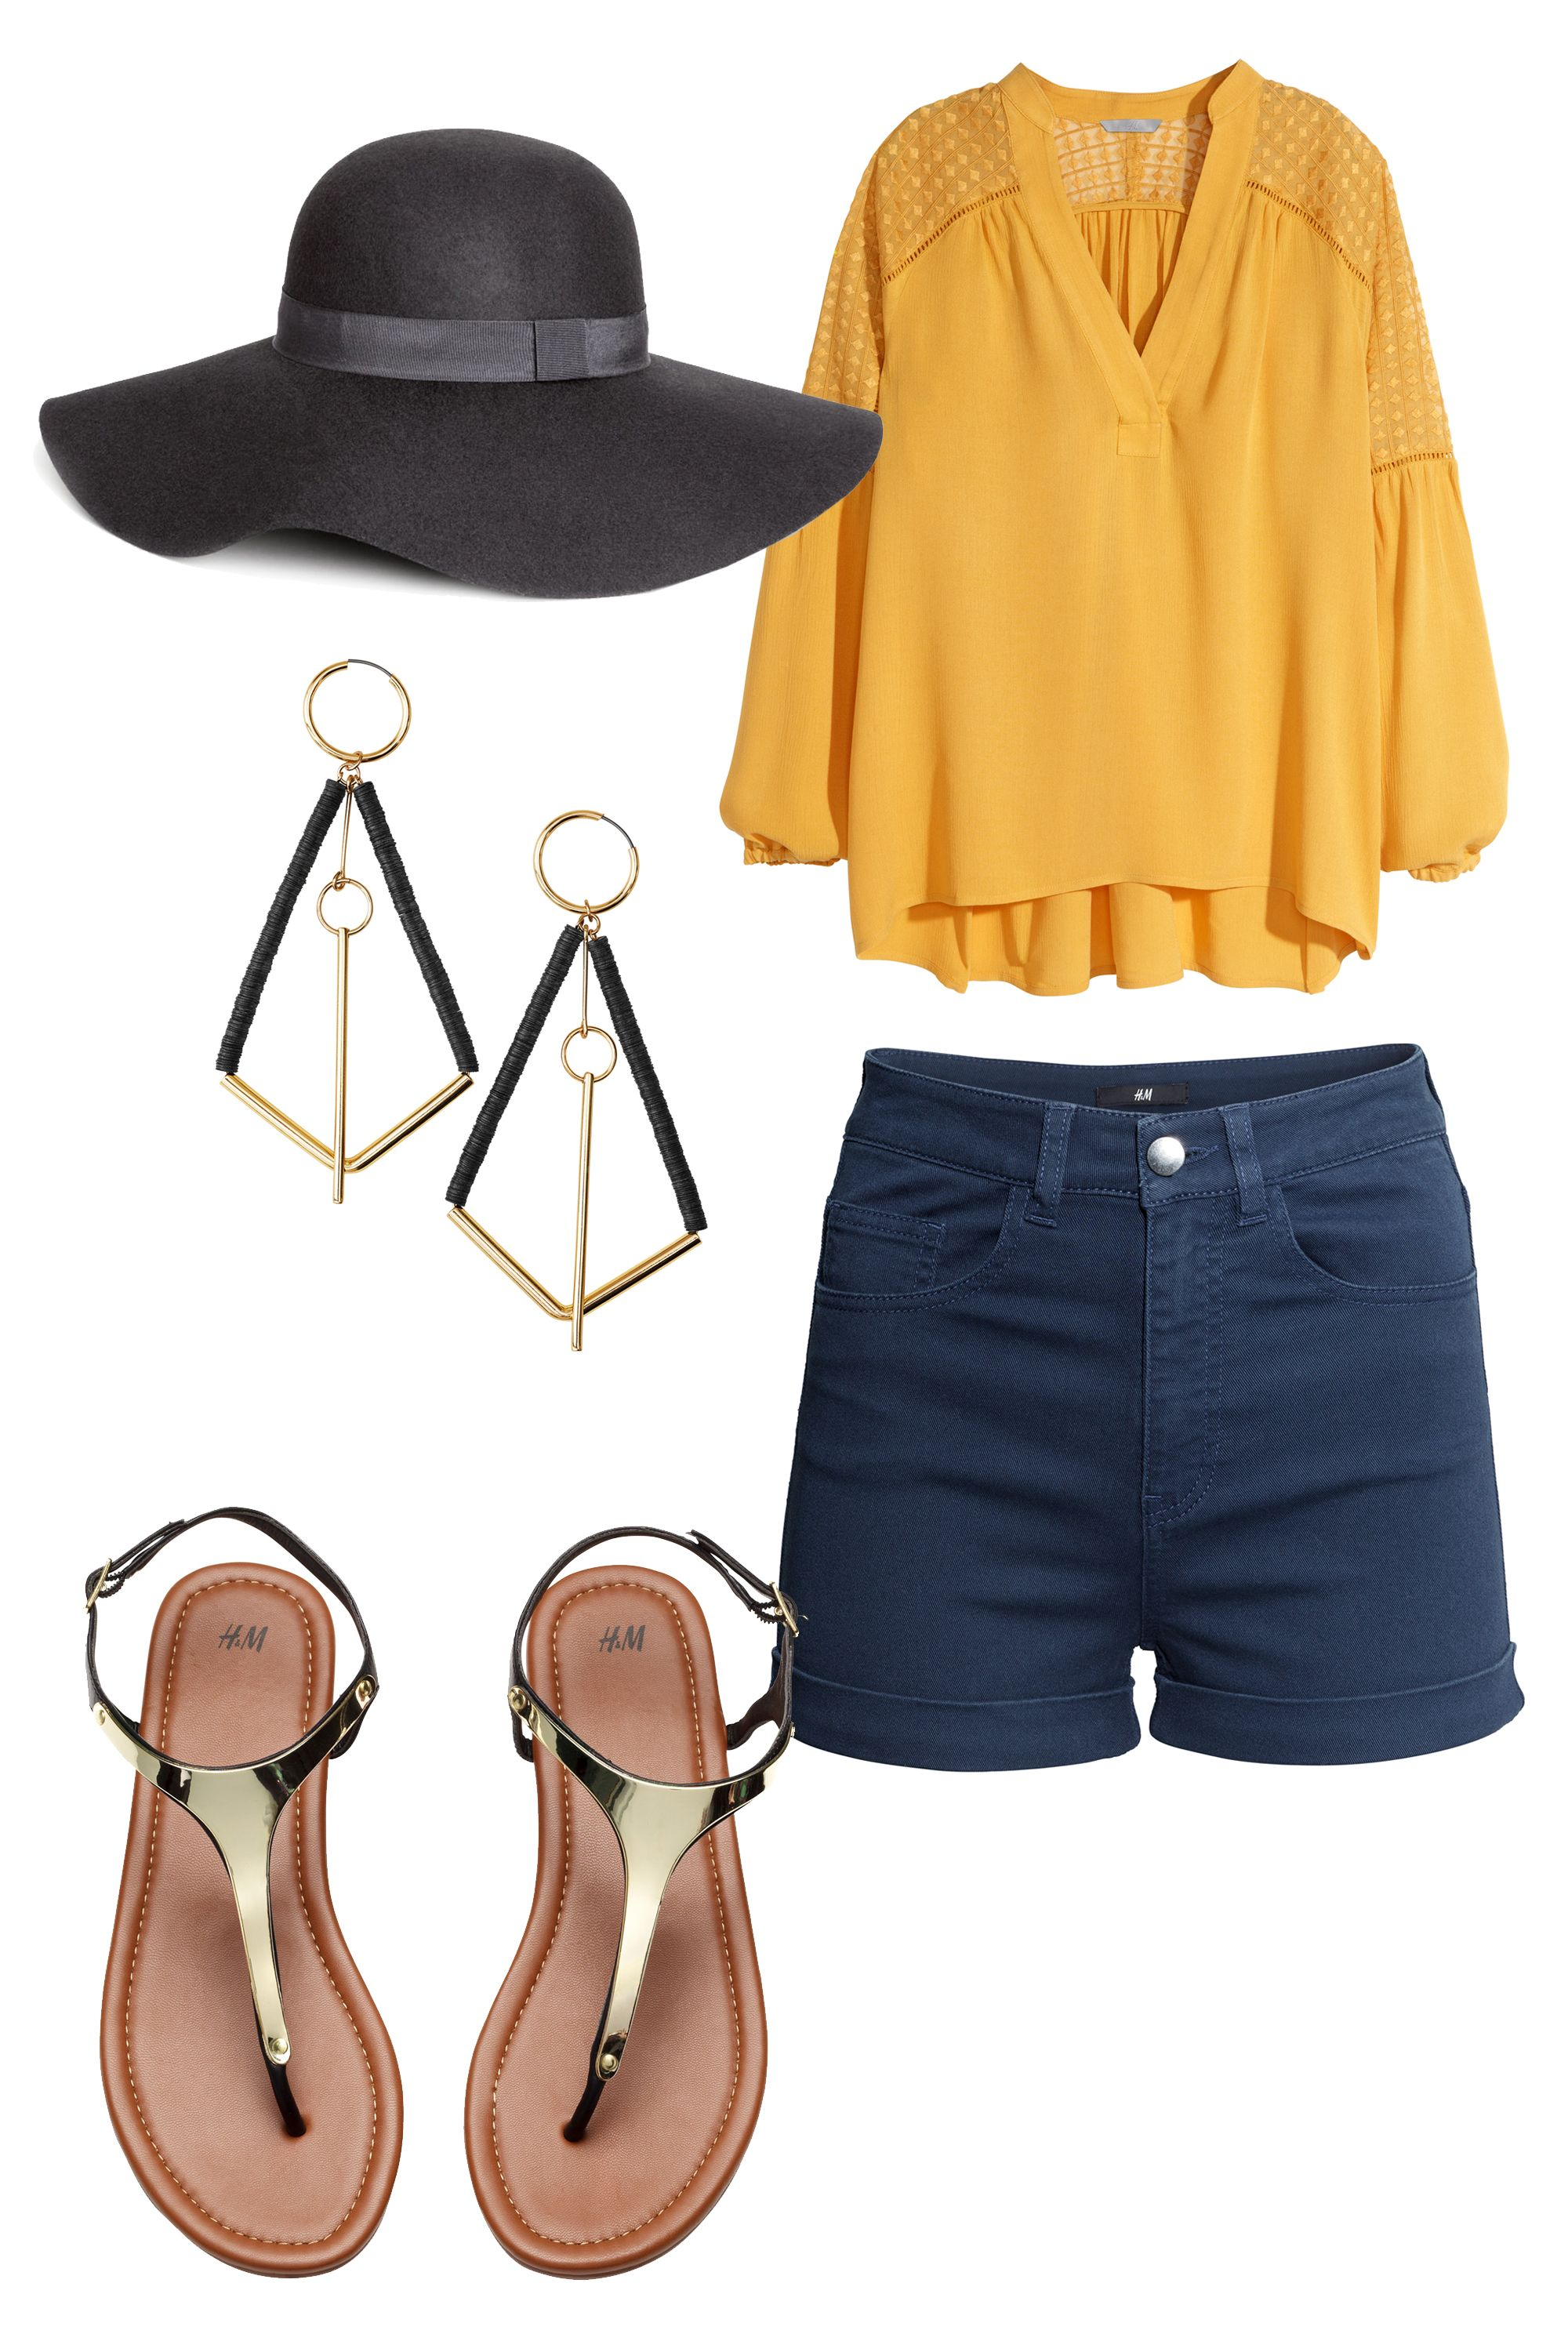 "Run around town in a bright statement top and comfy shorts without risking sunburn. This 100%-wool sun hat will keep spring's UV rays at bay and top off a tres chic look. <em></em>  <em>Shorts; <a target=""_blank"" href=""http://www.hm.com/us/subdepartment/LADIES?Nr=4294960292#page=0&Nr=4294960292"">hm.com</a>; V-neck Blouse, $34.95; <a target=""_blank"" href=""http://www.hm.com/us/product/91288?article=91288-A"">hm.com</a>; Sandals; <a target=""_blank"" href=""http://www.hm.com/us/subdepartment/LADIES?Nr=4294966587#Nr=4294844997"">hm.com</a>; Earrings; <a target=""_blank"" href=""http://www.hm.com/us/subdepartment/LADIES?Nr=4294966587#Nr=4294898441"">hm.com</a>; Wool Hat, $24.95; </em><a target=""_blank"" href=""http://www.hm.com/us/product/87911?article=87911-A""><em>hm.com</em></a>"